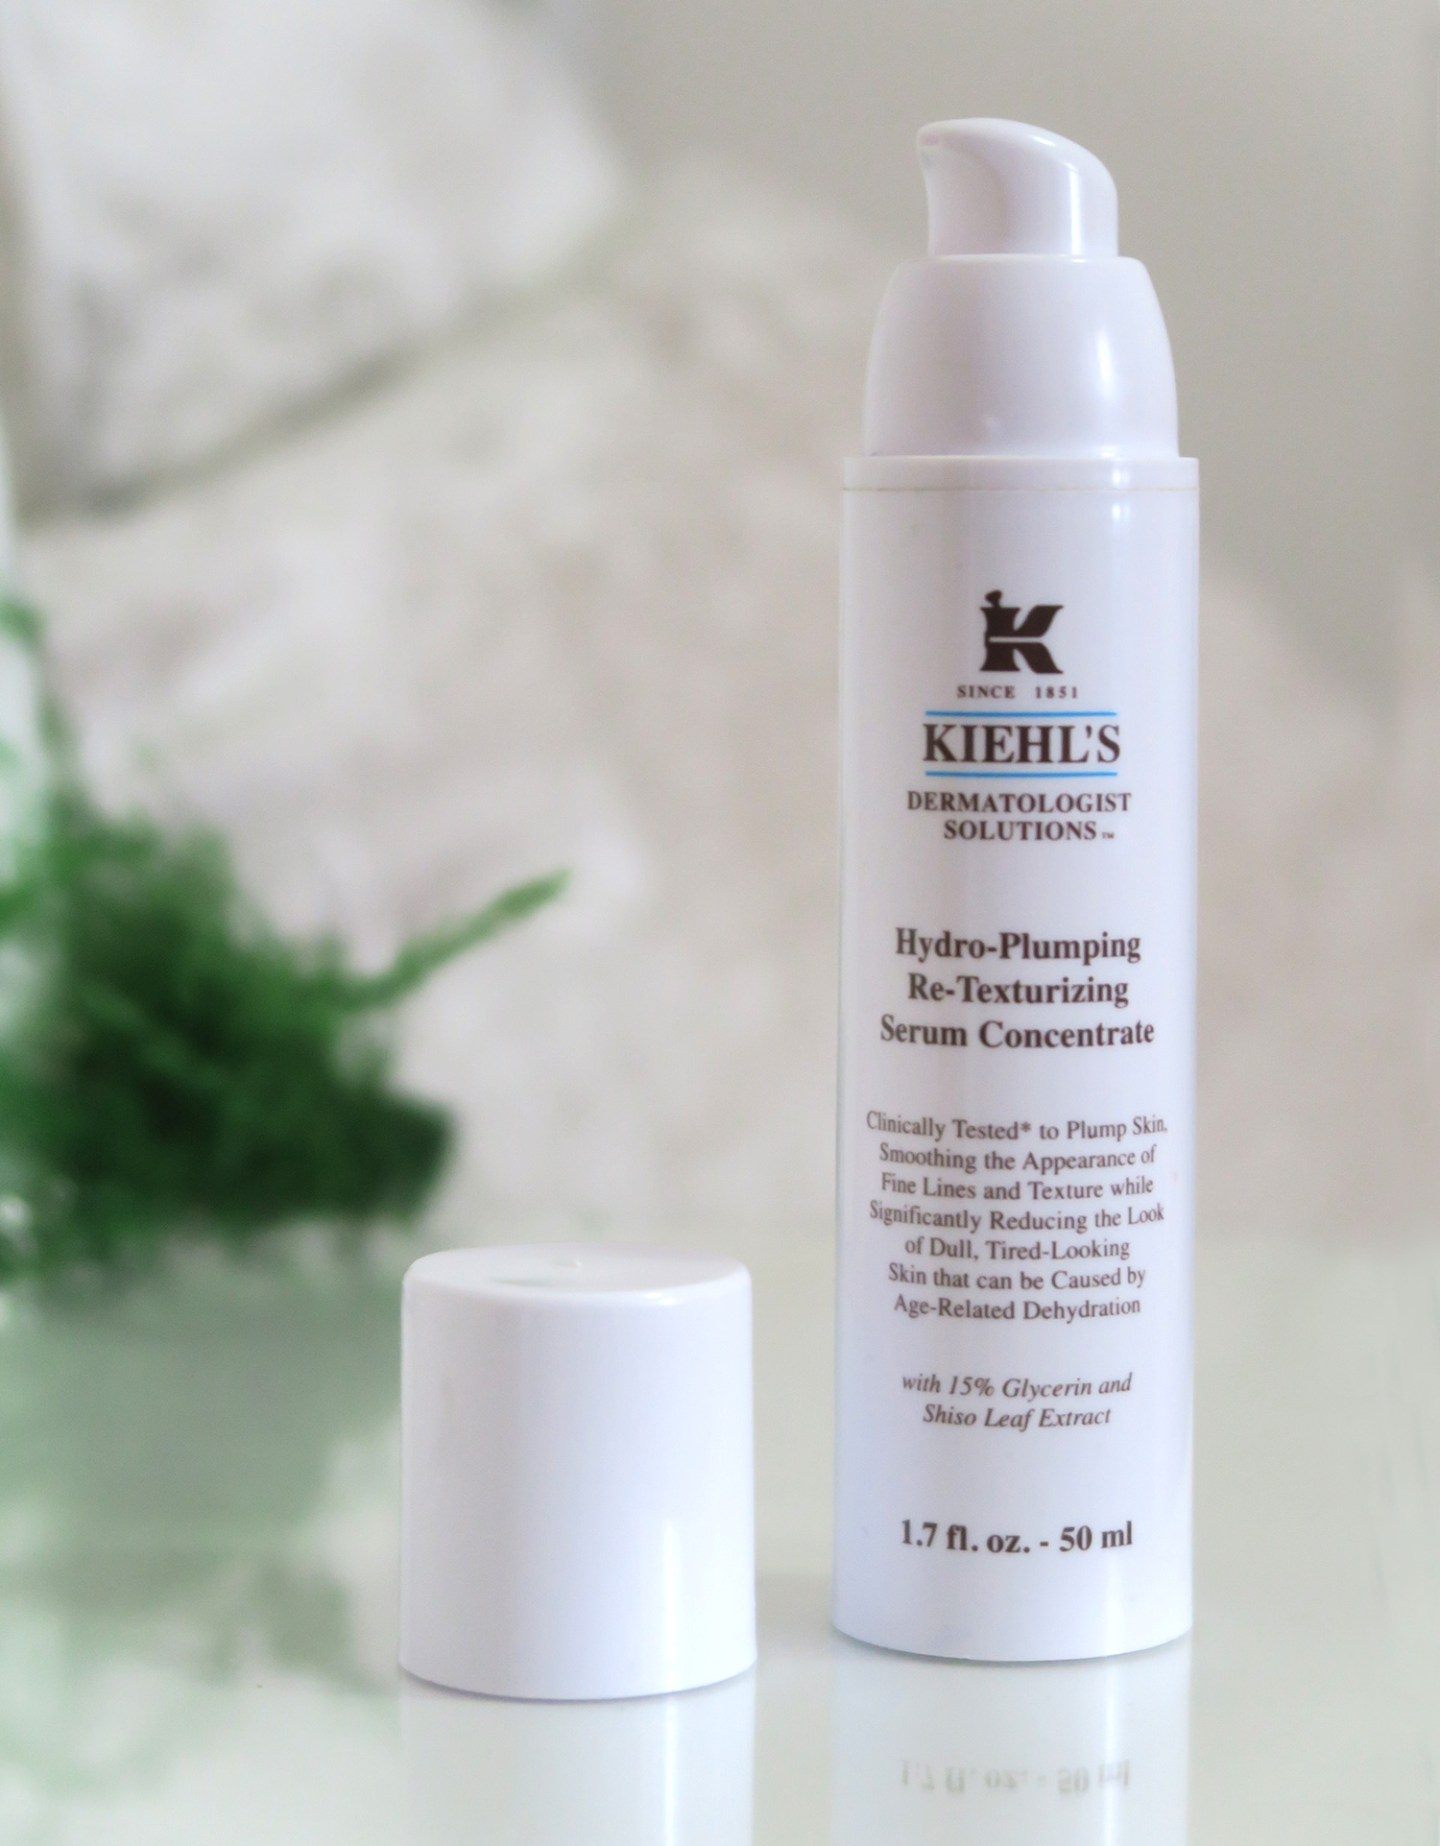 hydro-plumping-re-texturizing-serum-concentrate-kiehls-glycerin